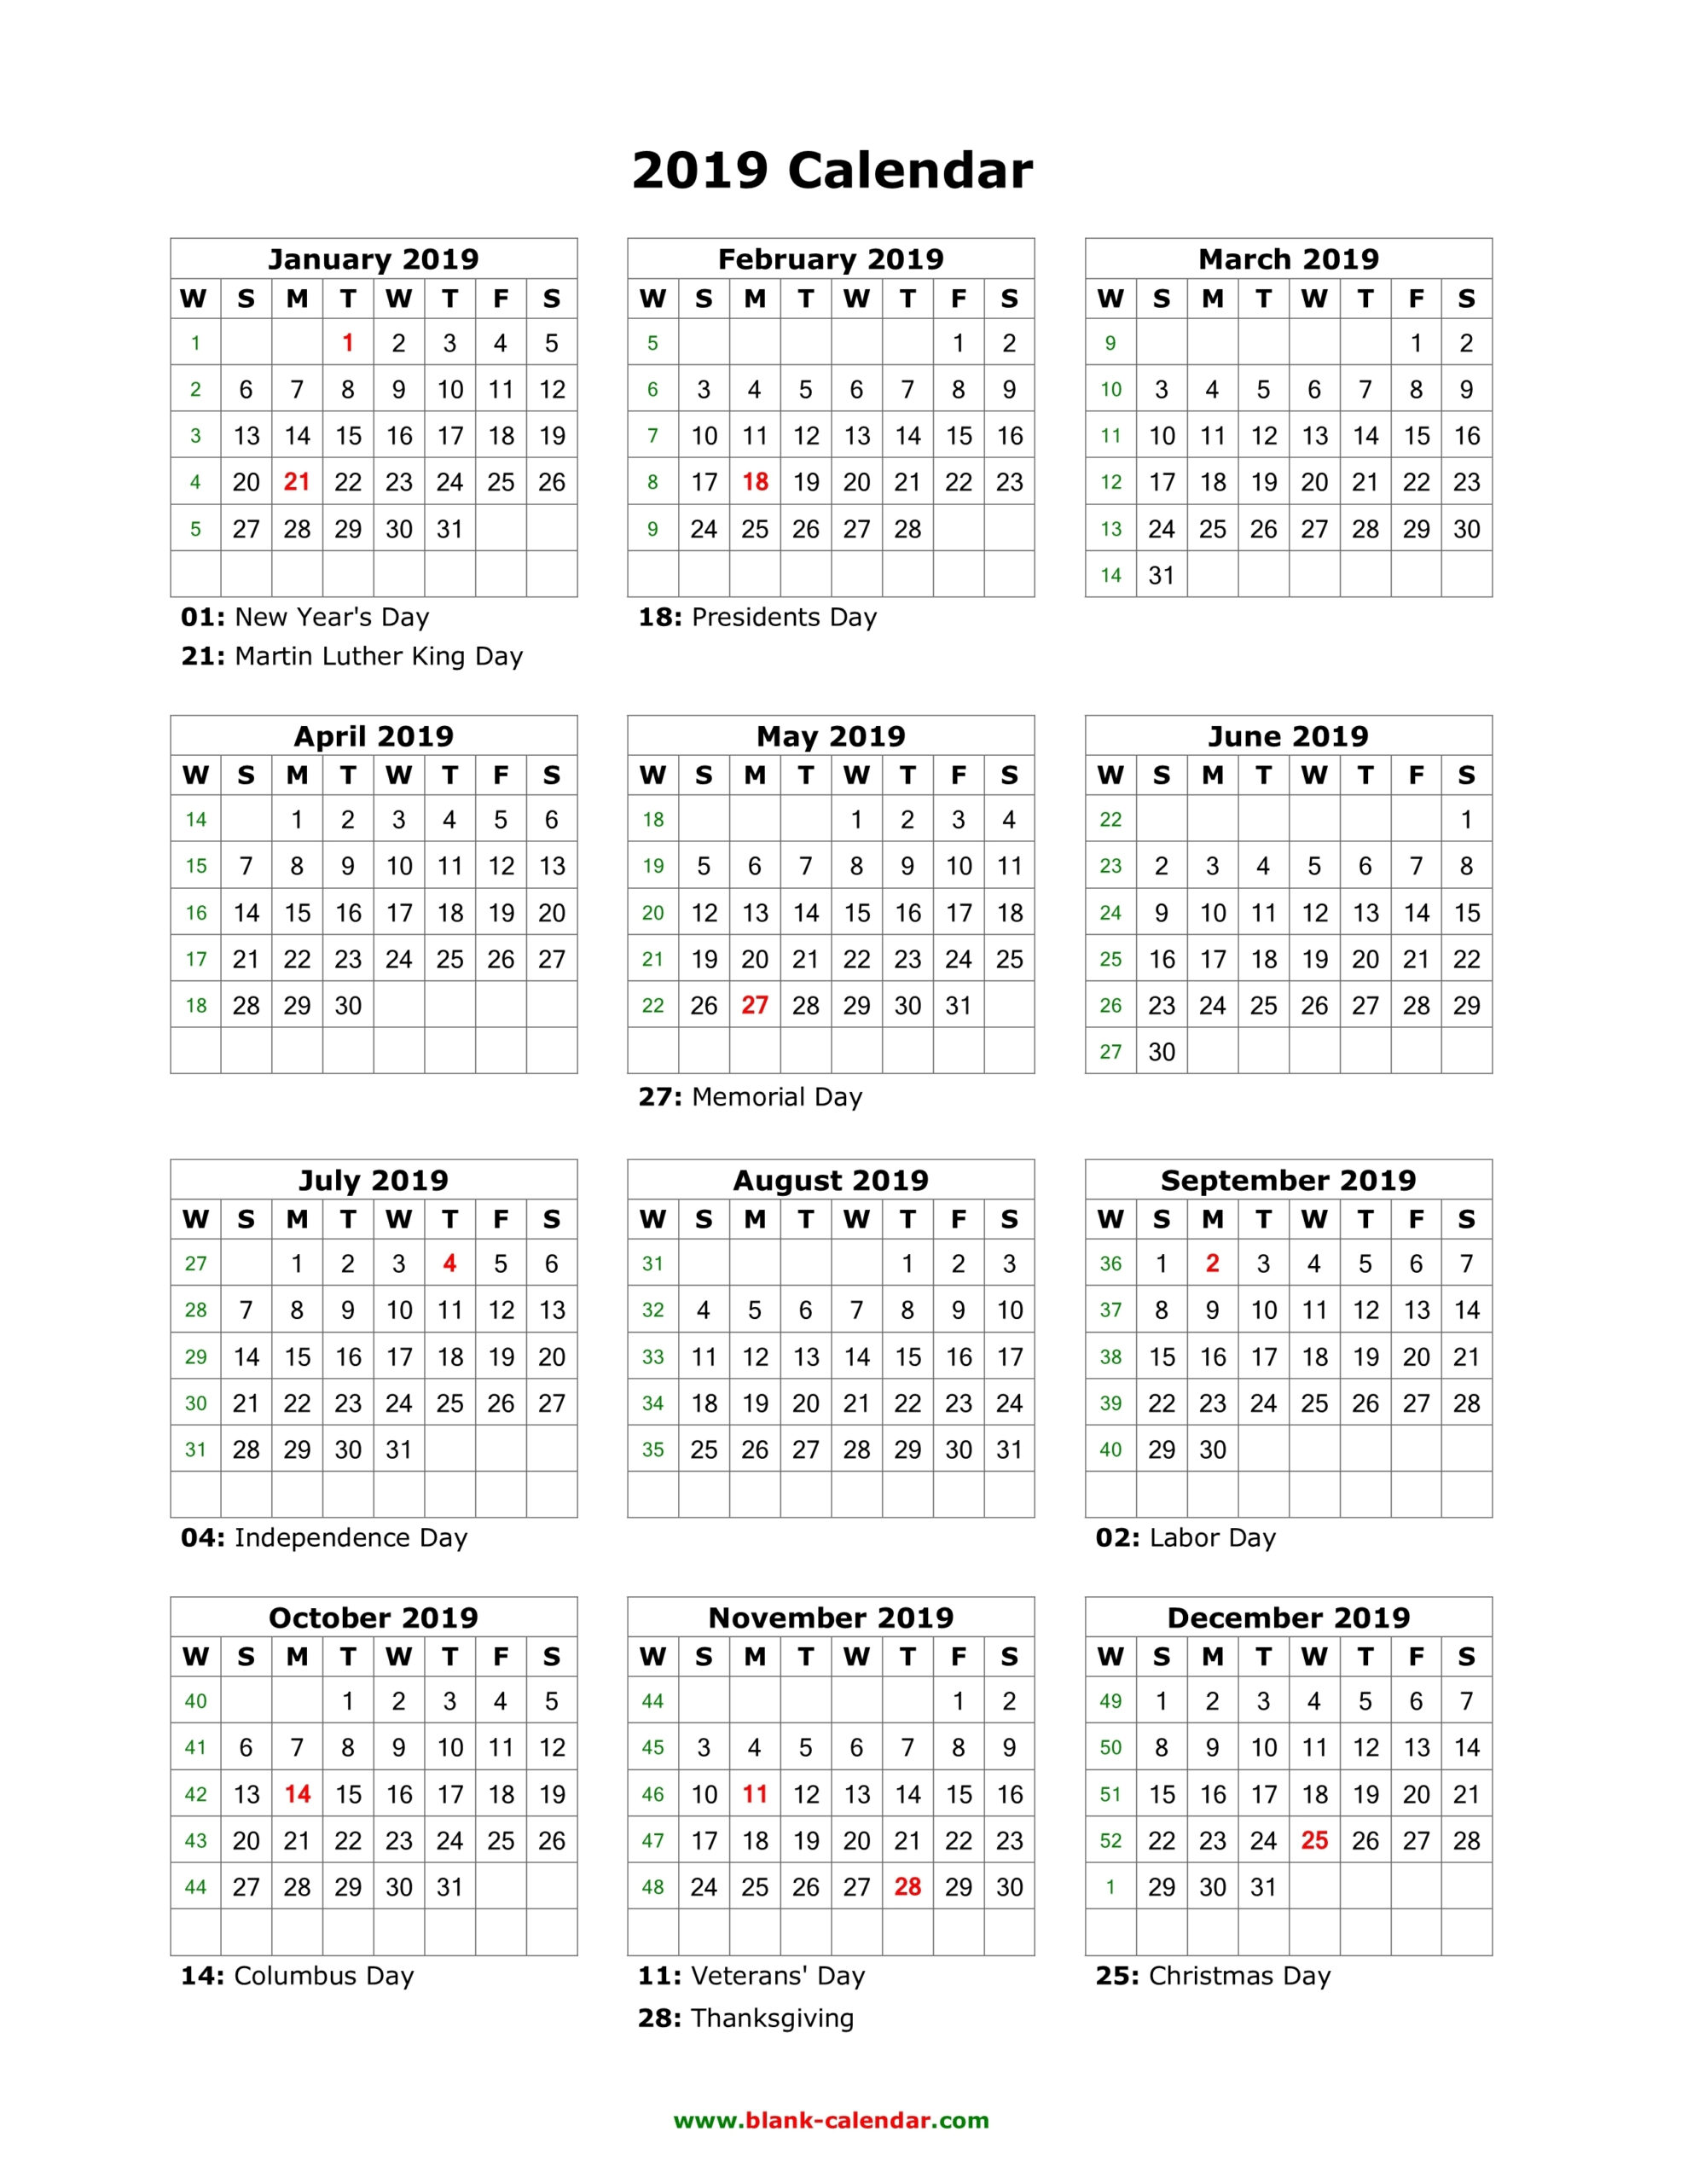 Get Blank 2019 Year Calendar On One Page ⋆ The Best